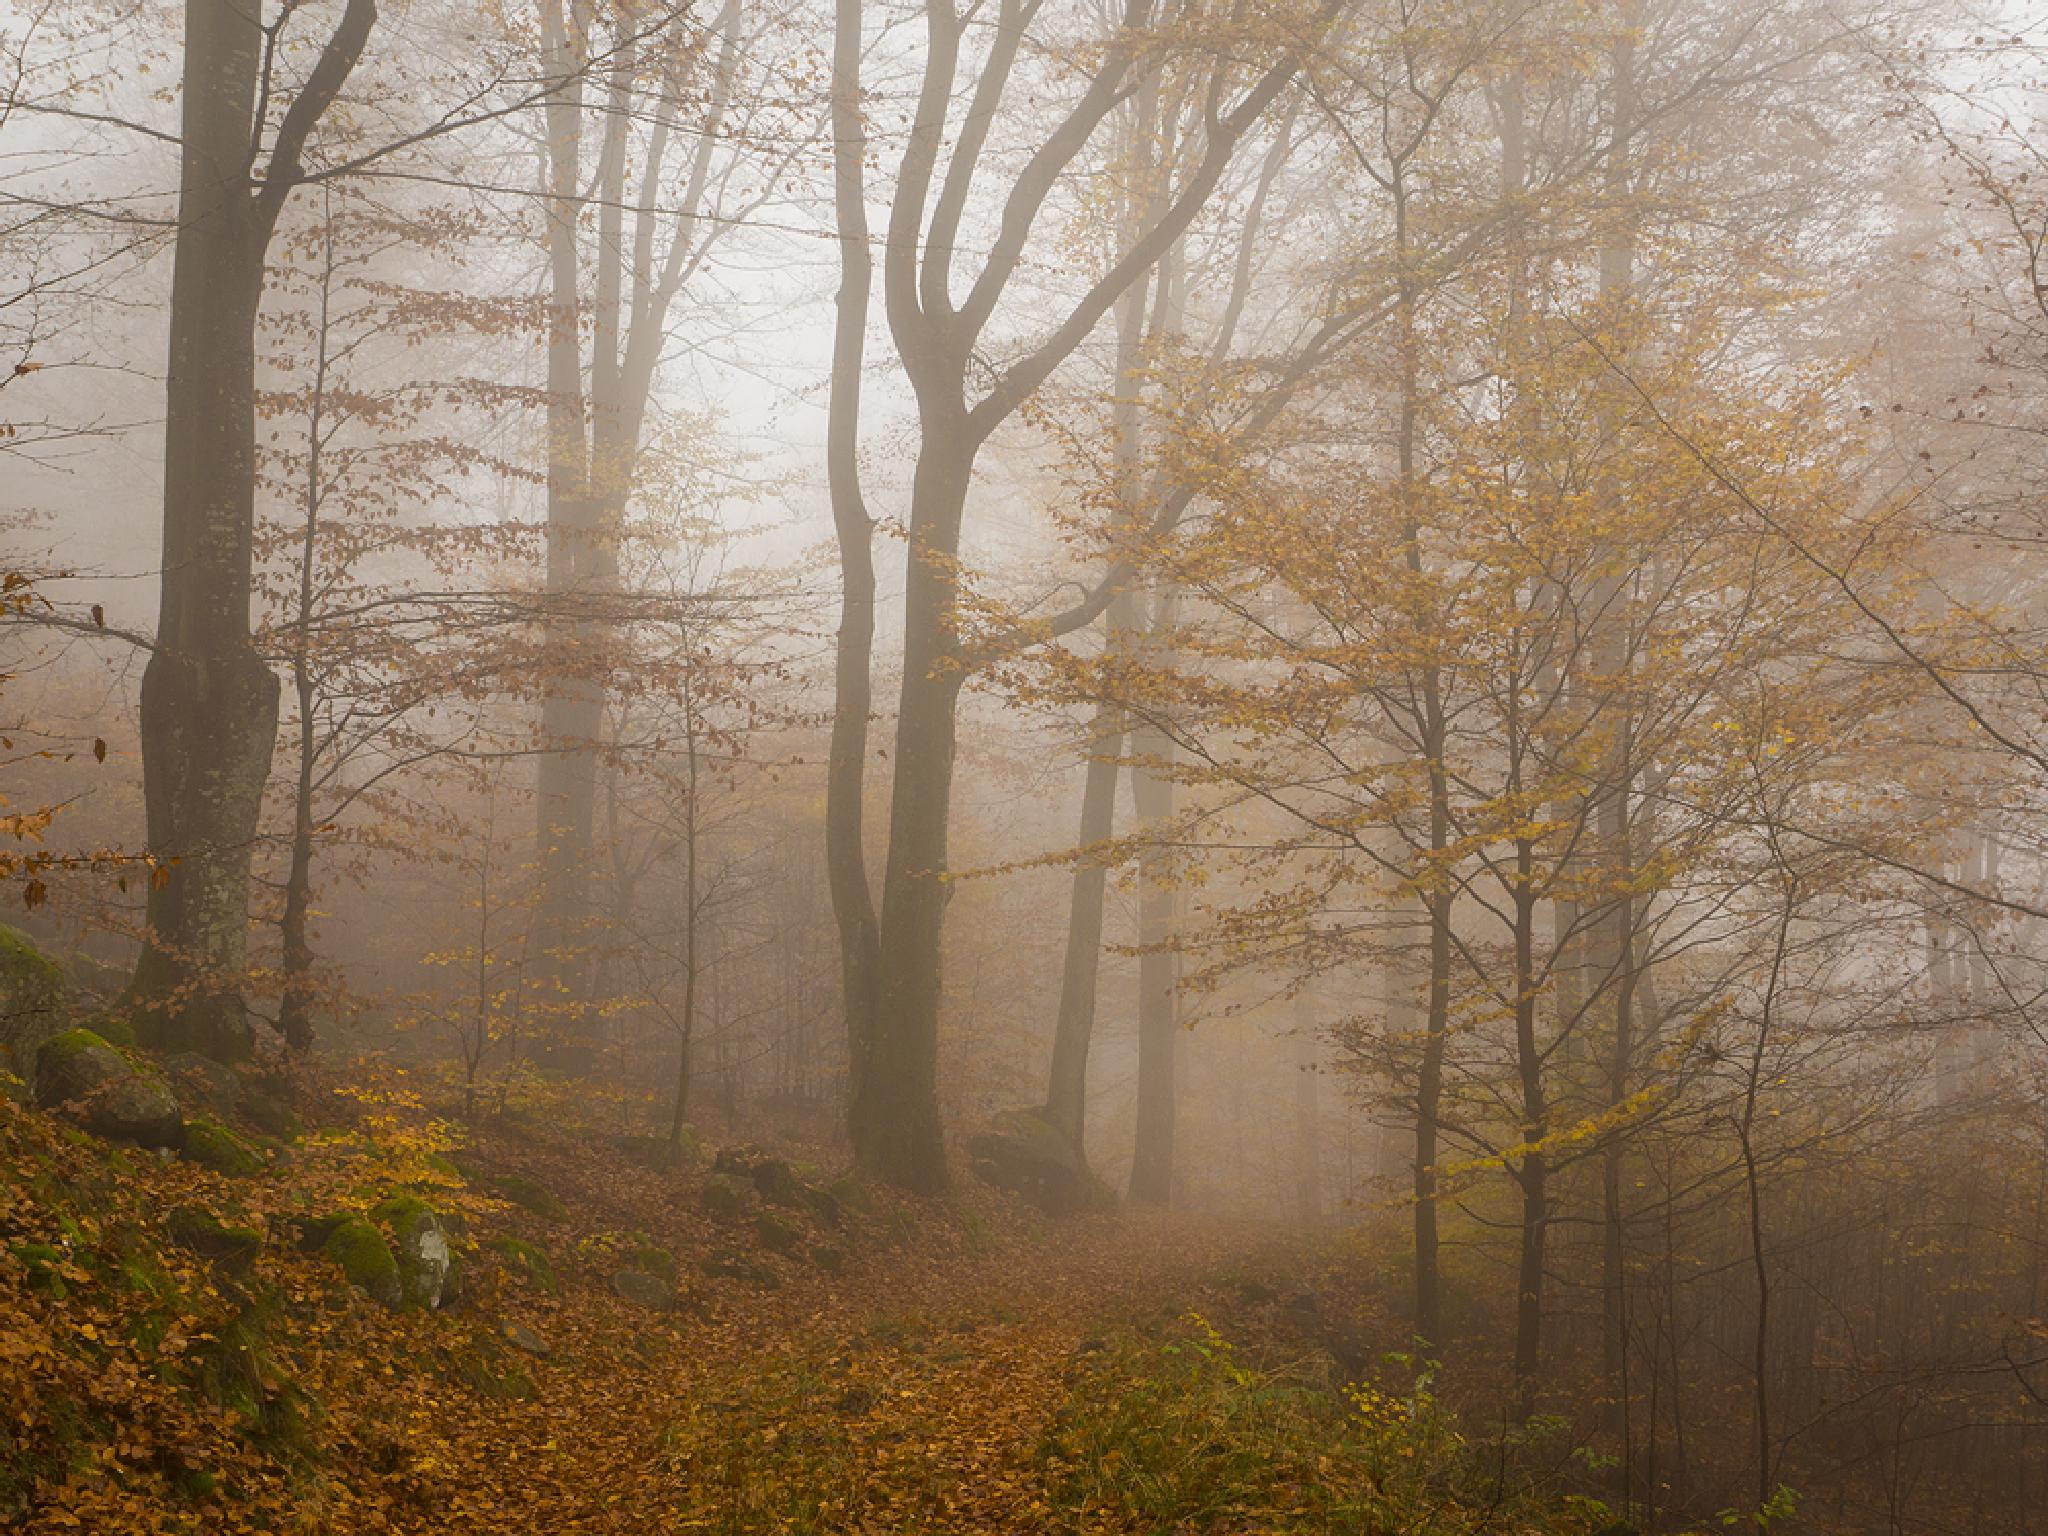 Dreamy forest by Peter Samuelsson